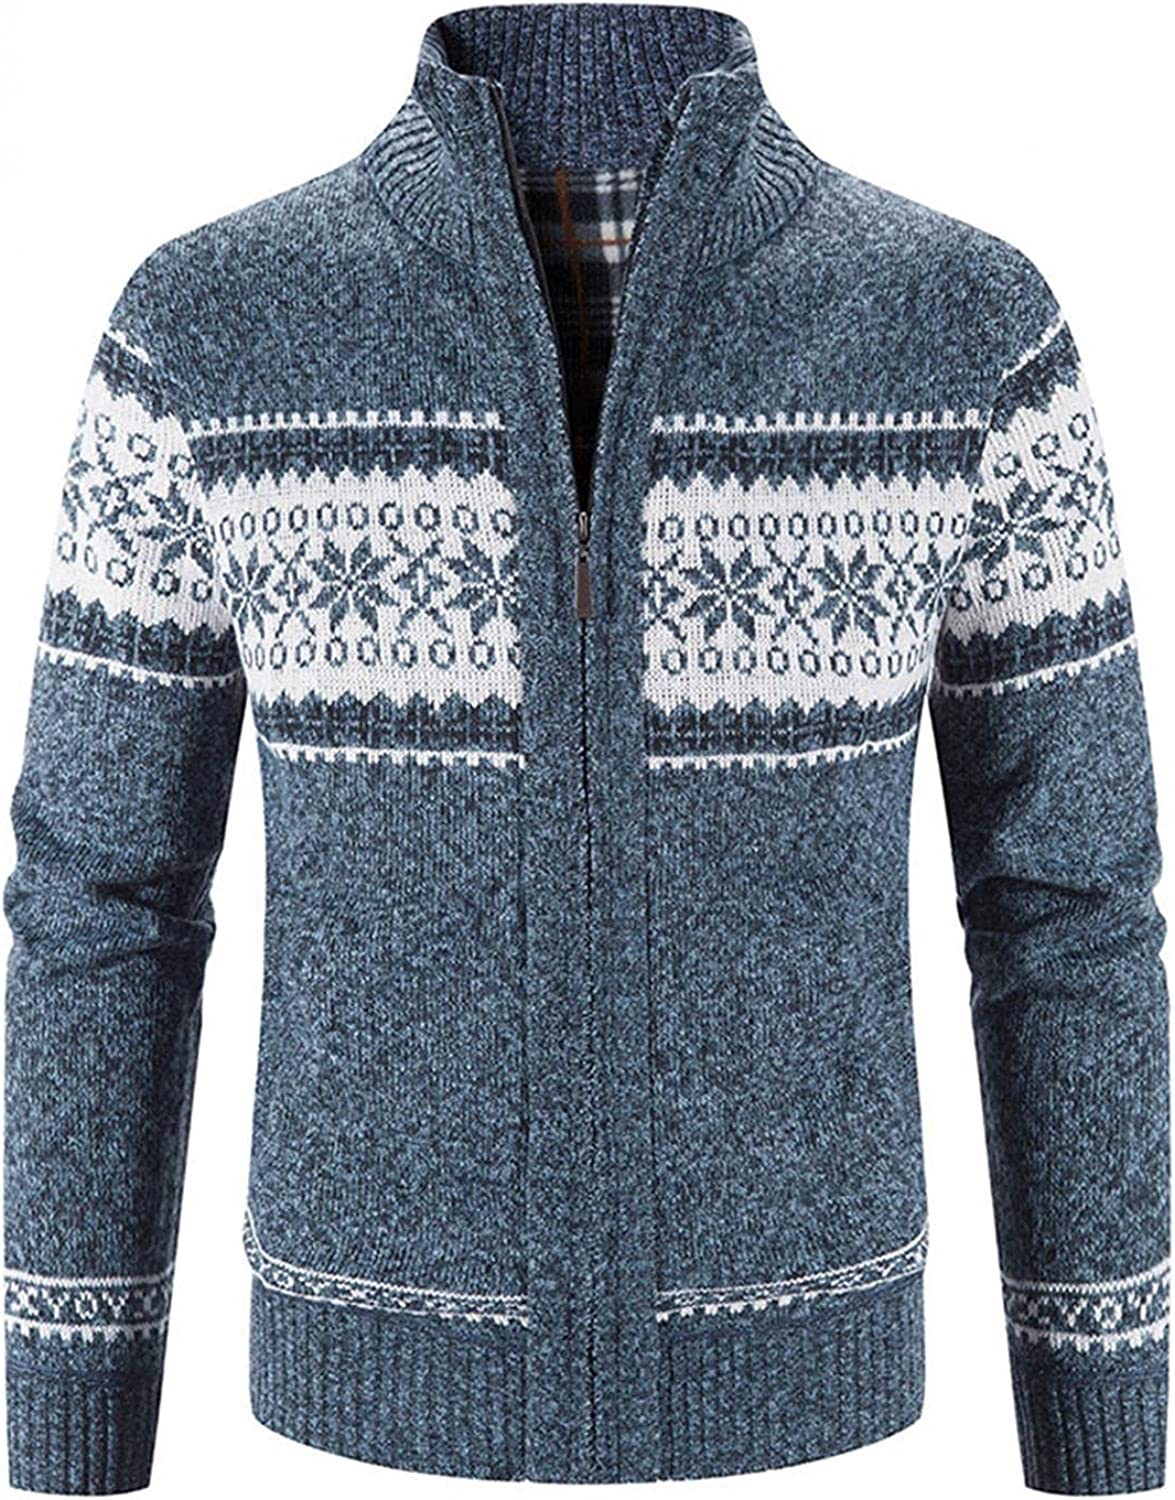 Mens Autumn Winter Knitted Sweater Stand Collar Cardigan Full Zip Thick Warm Coat Stripes Casual Slim Fit Jacket